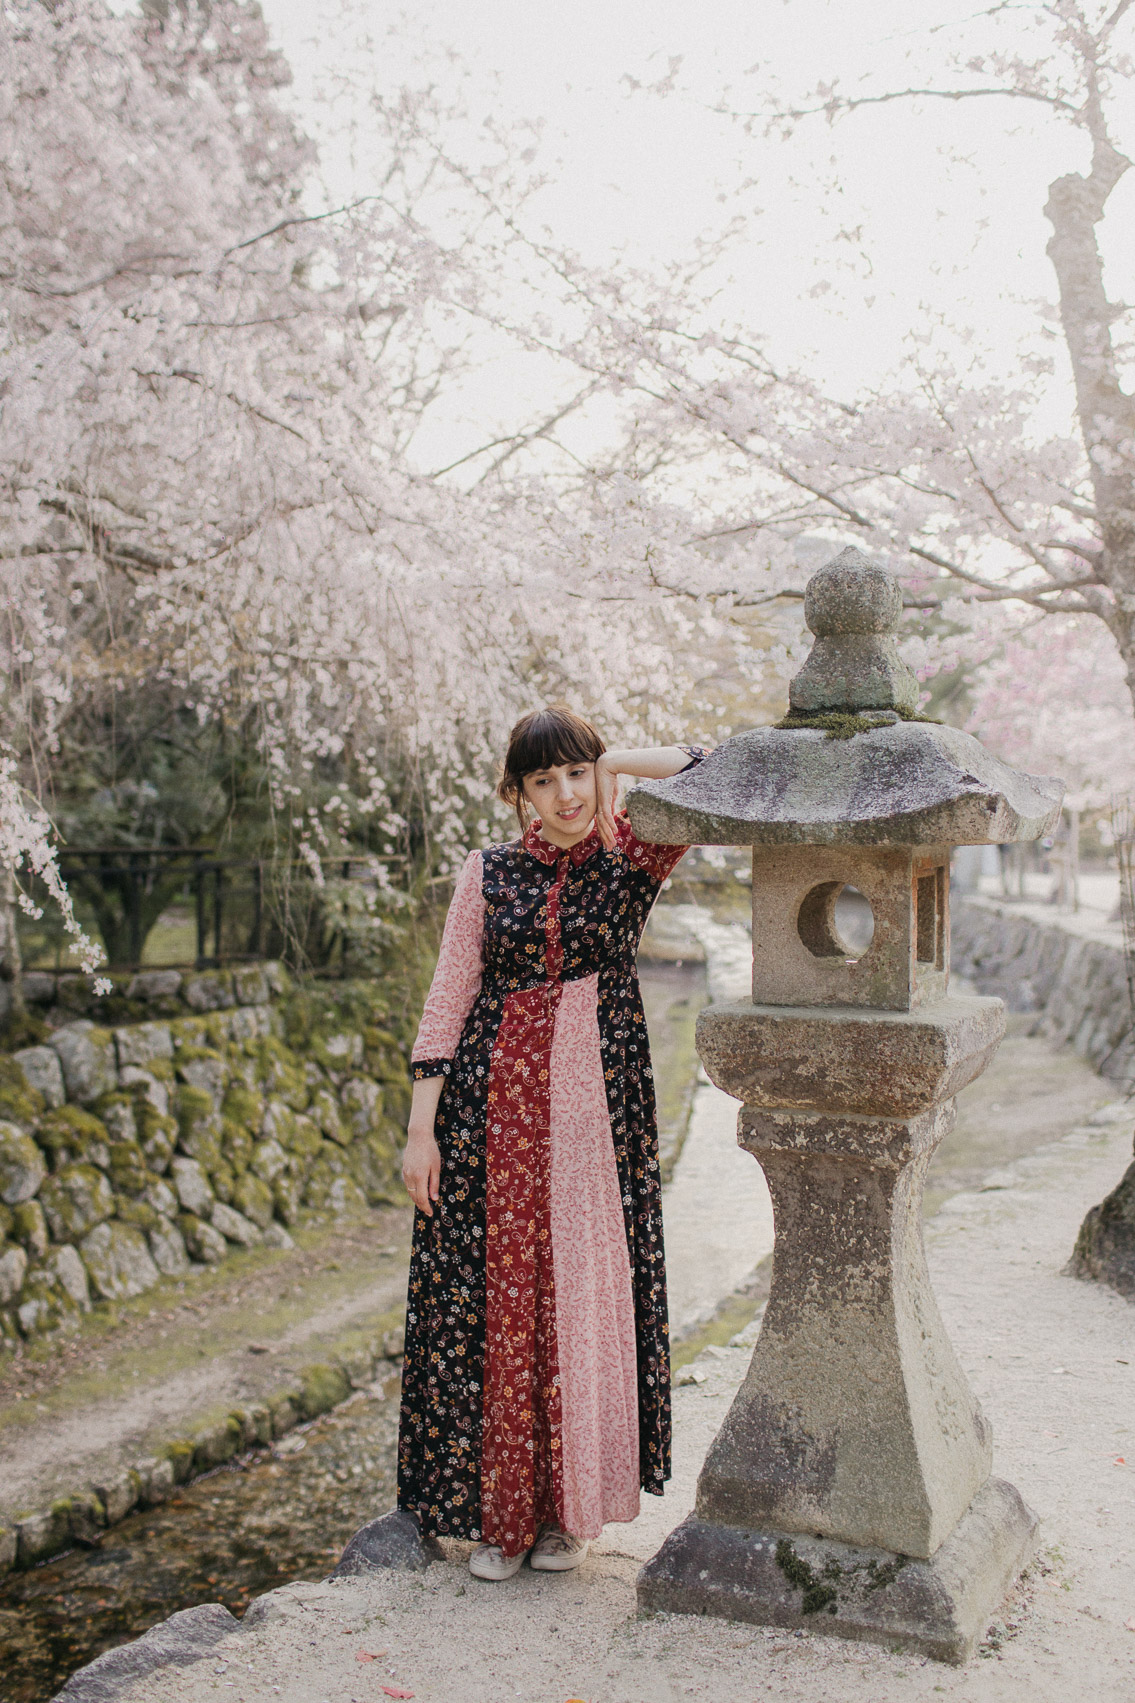 Sakura in Miyajima - The cat, you and us